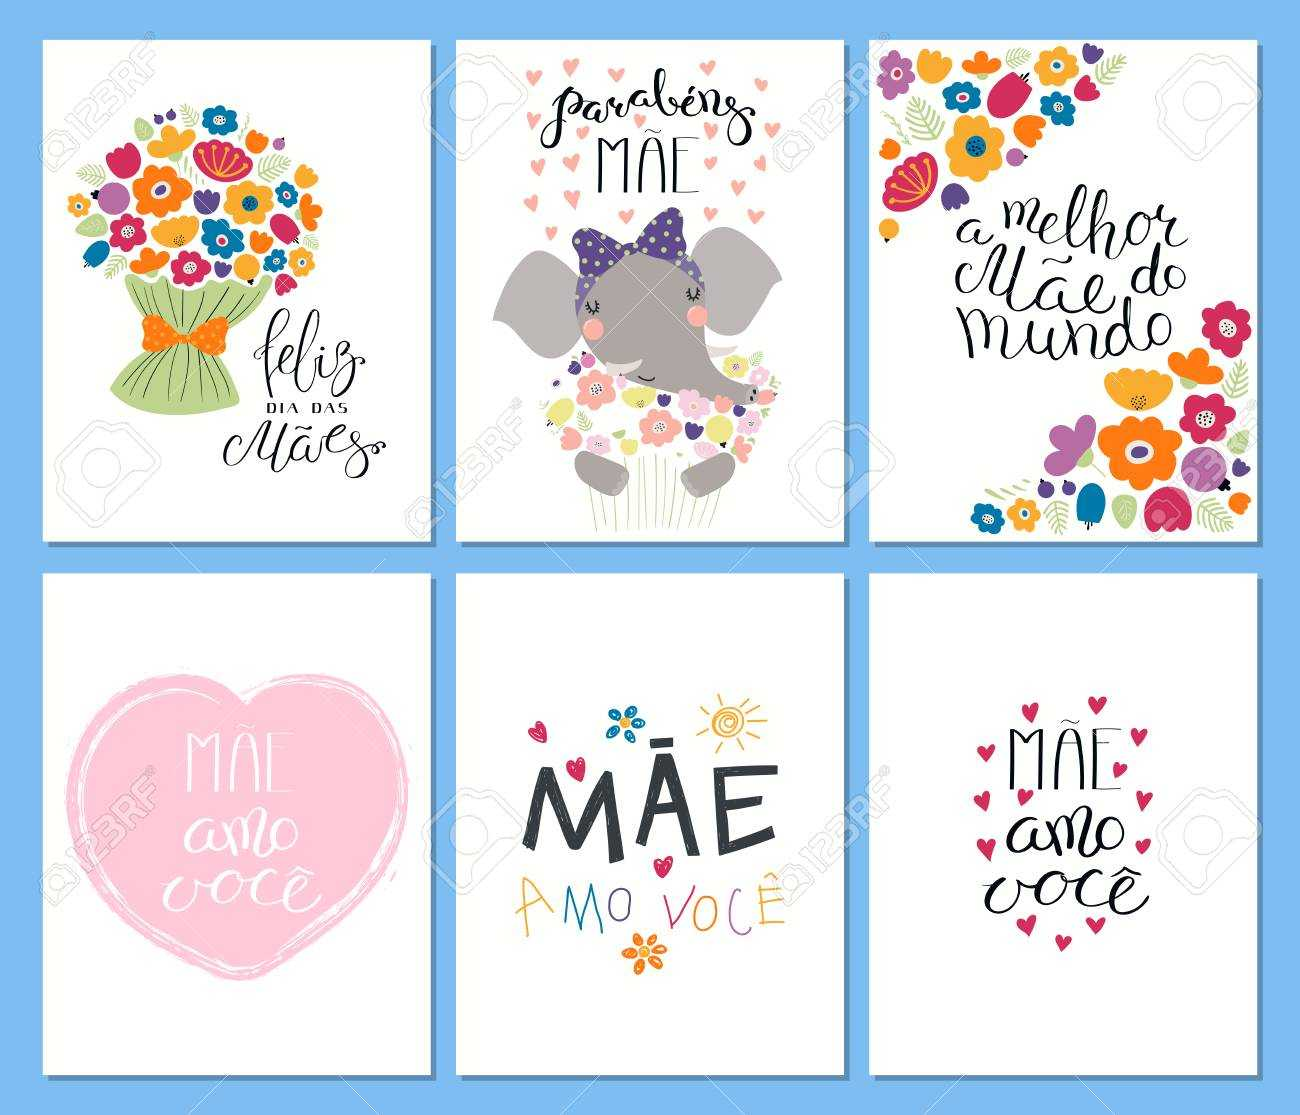 Set Of Mother's Day Cards Templates With Quotes In Portuguese With Mothers Day Card Templates